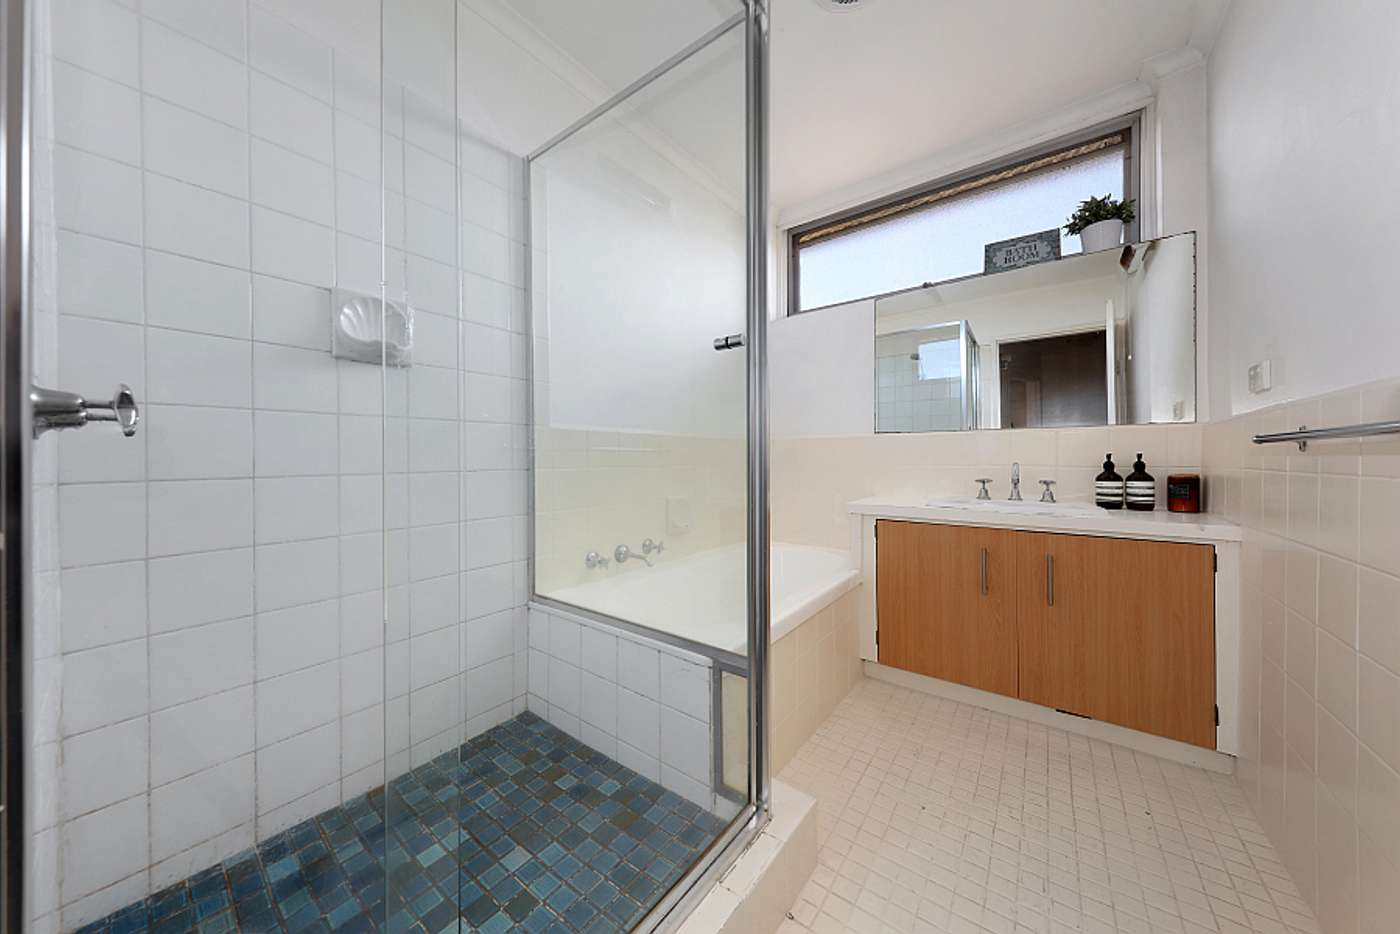 Fifth view of Homely apartment listing, 10/527 Dandenong Road, Armadale VIC 3143